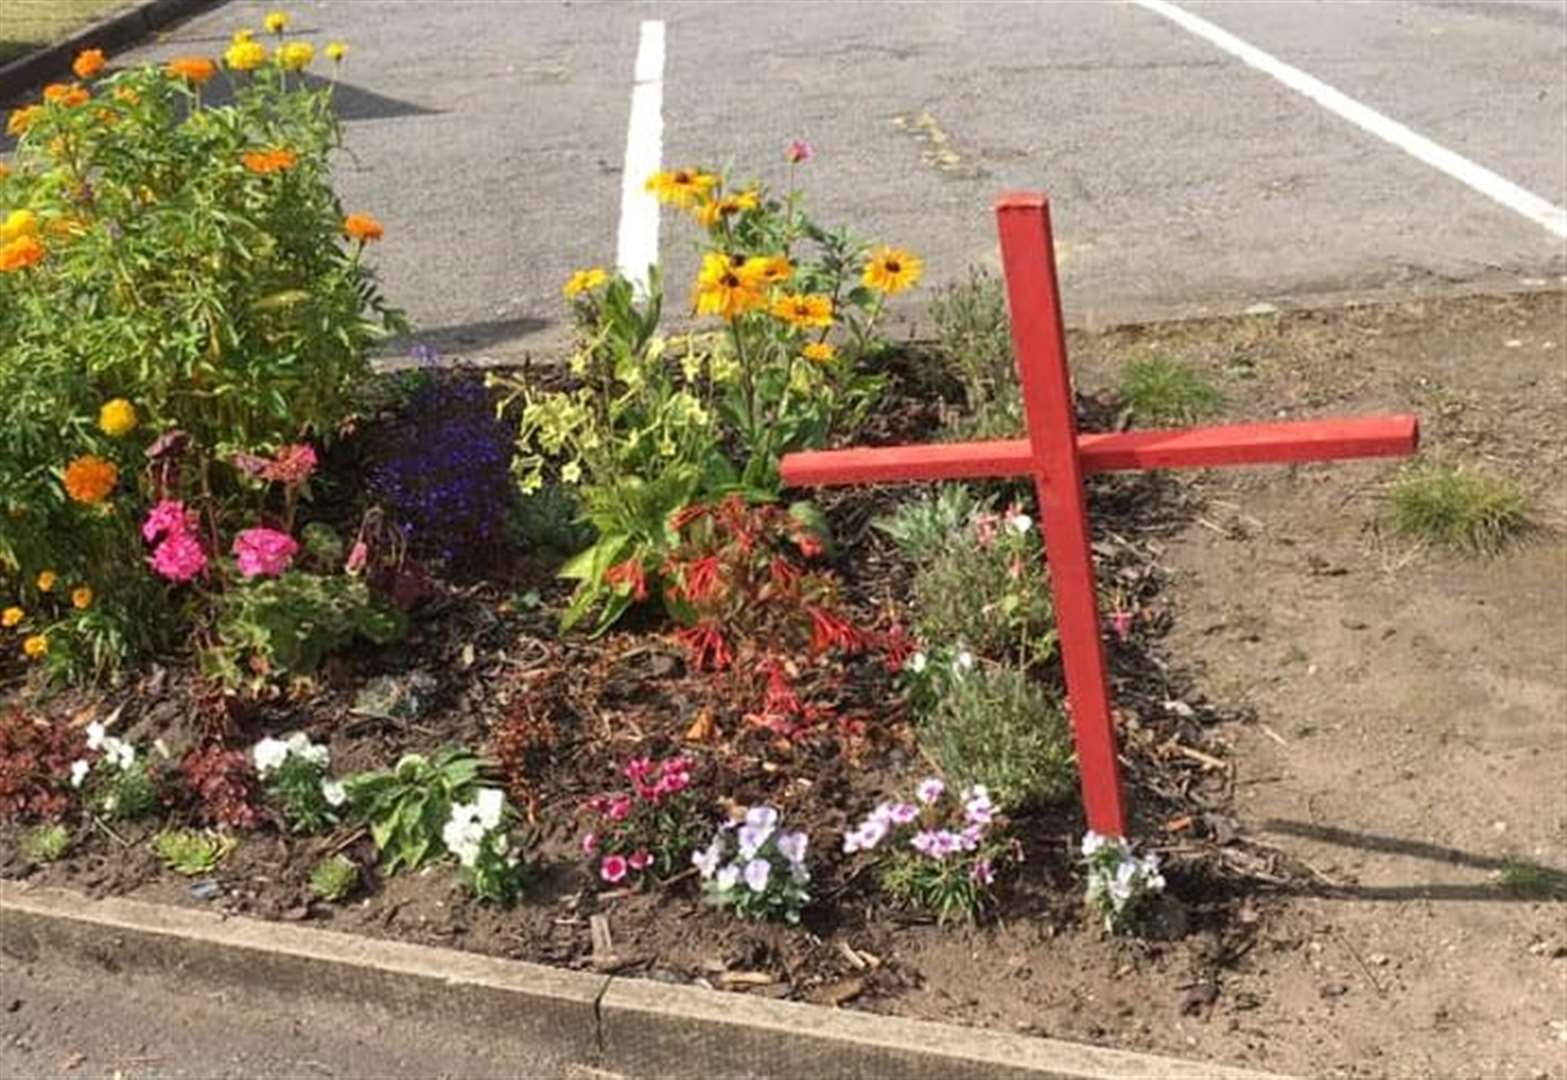 Surgeon removes 'inappropriate' and 'macabre' crosses at Grantham Hospital